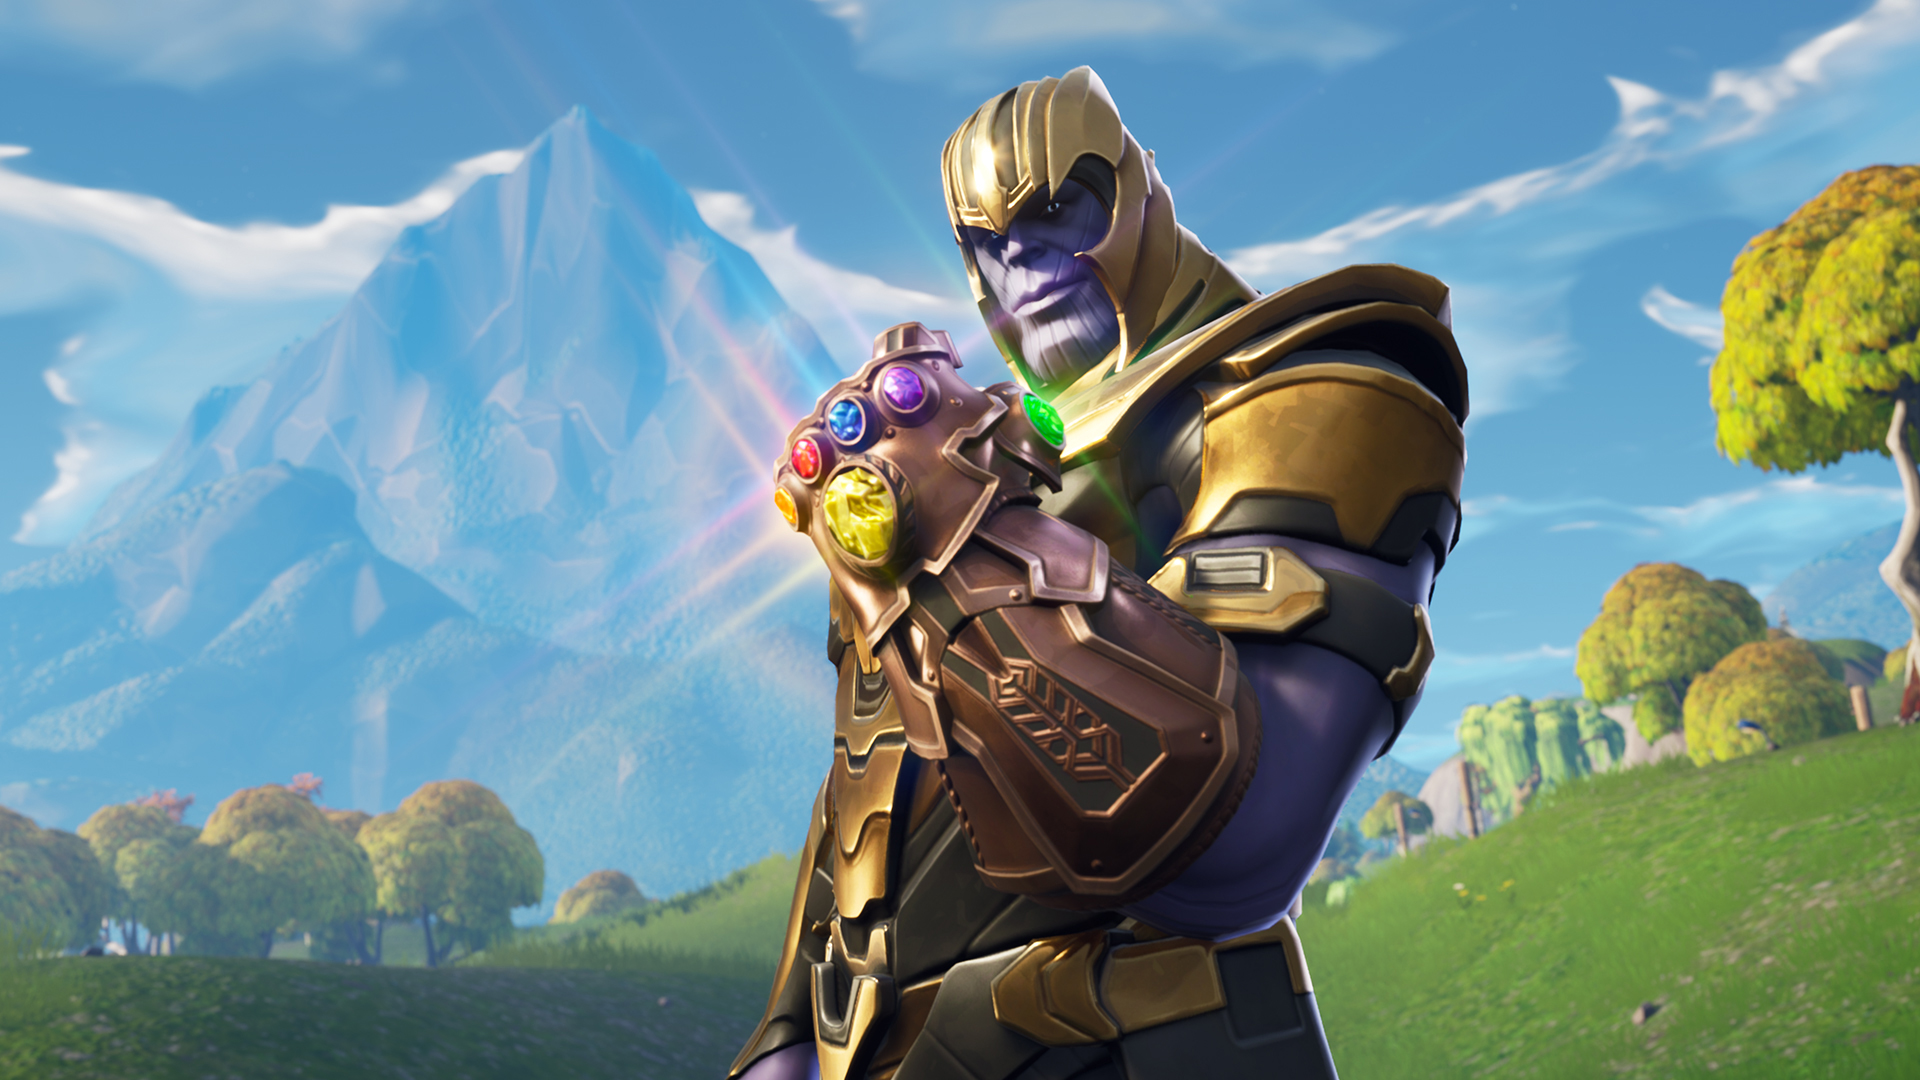 HD Fortnite WallPapers for PC